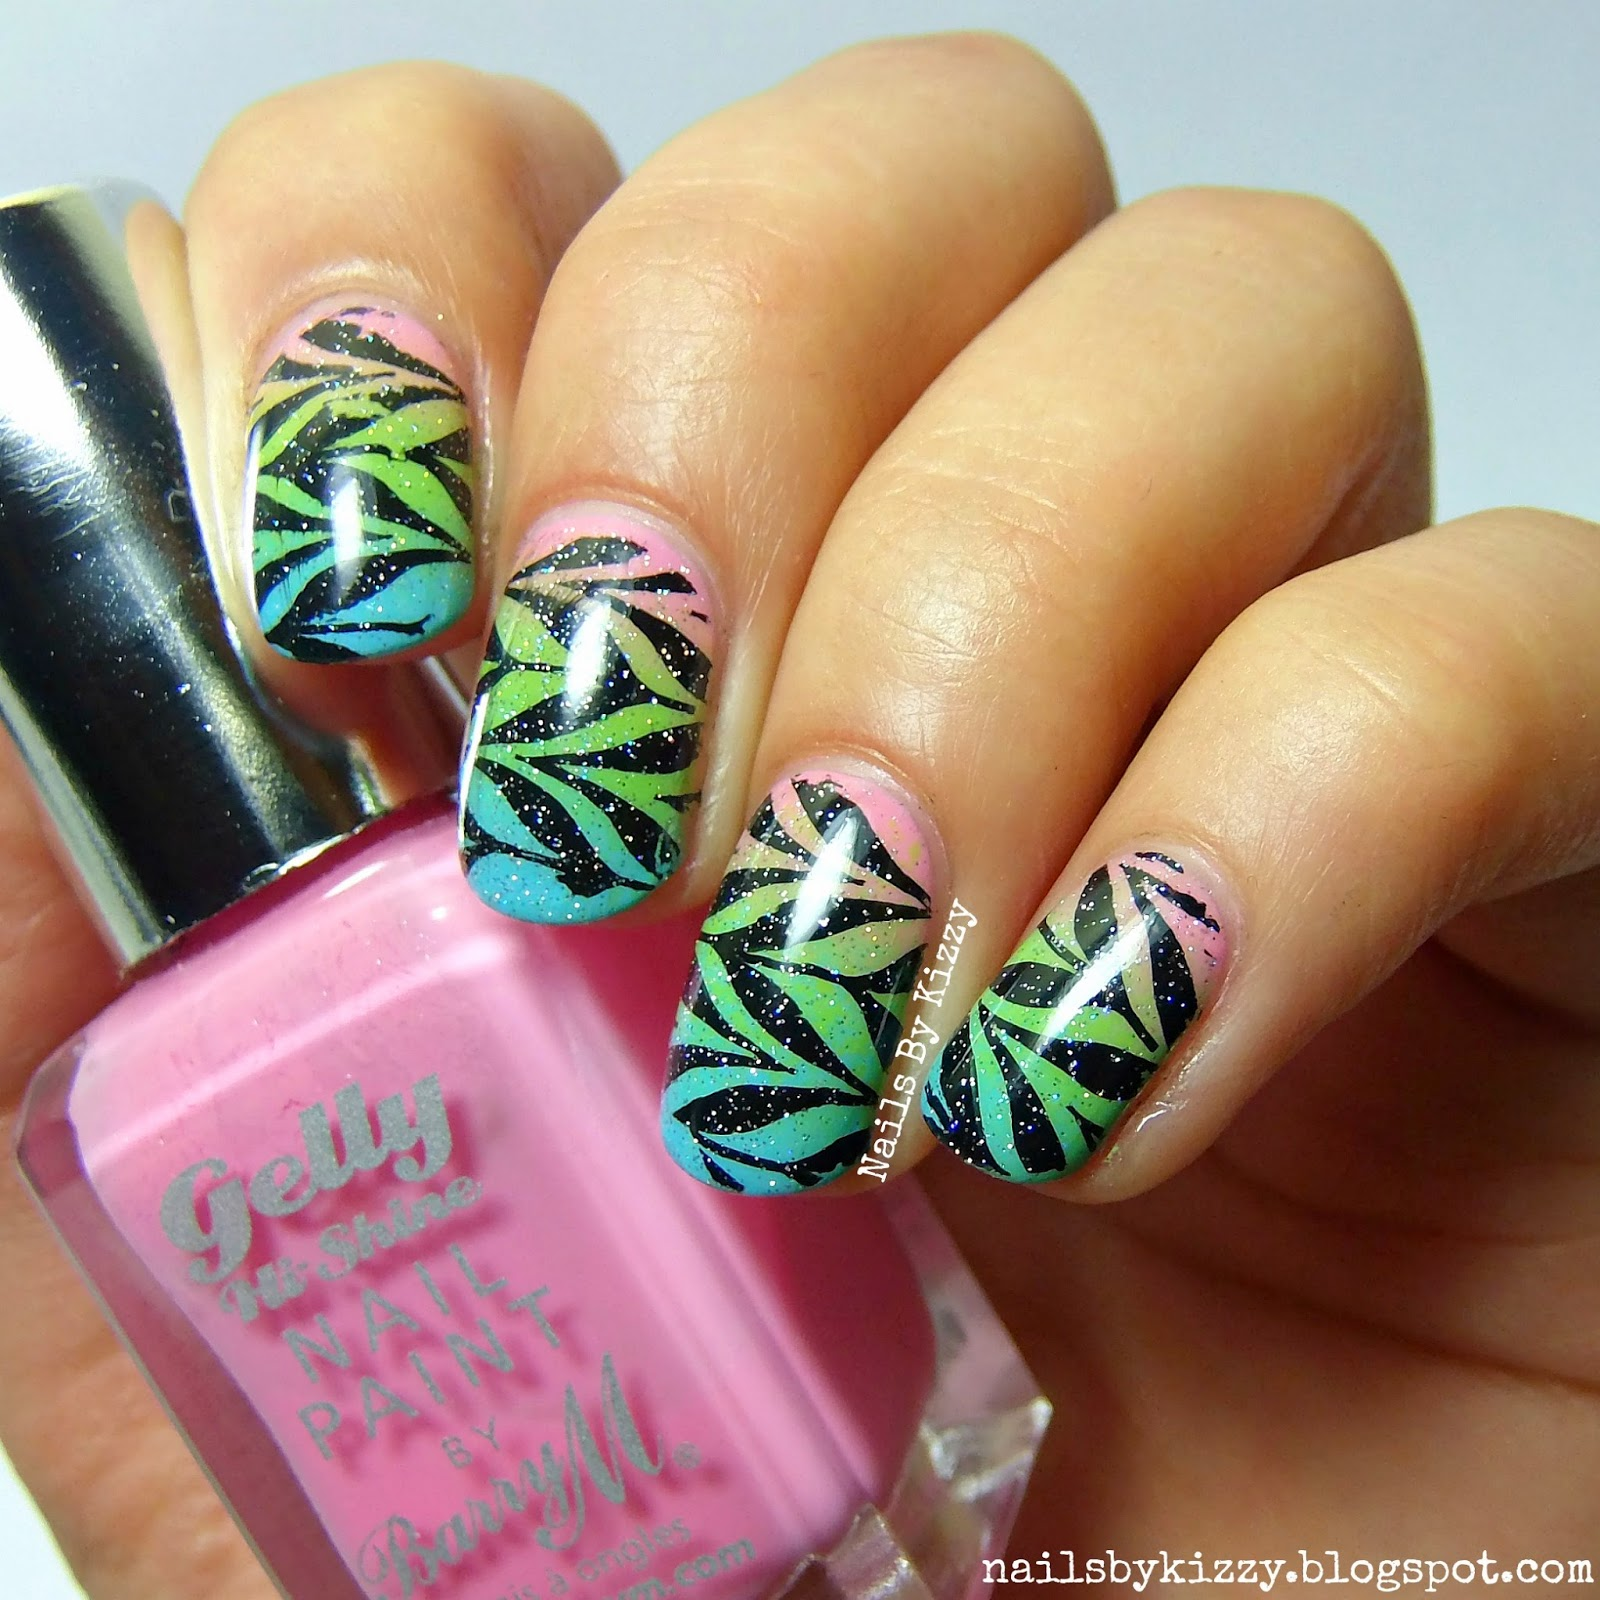 Nails By Kizzy: Water marbling without water!